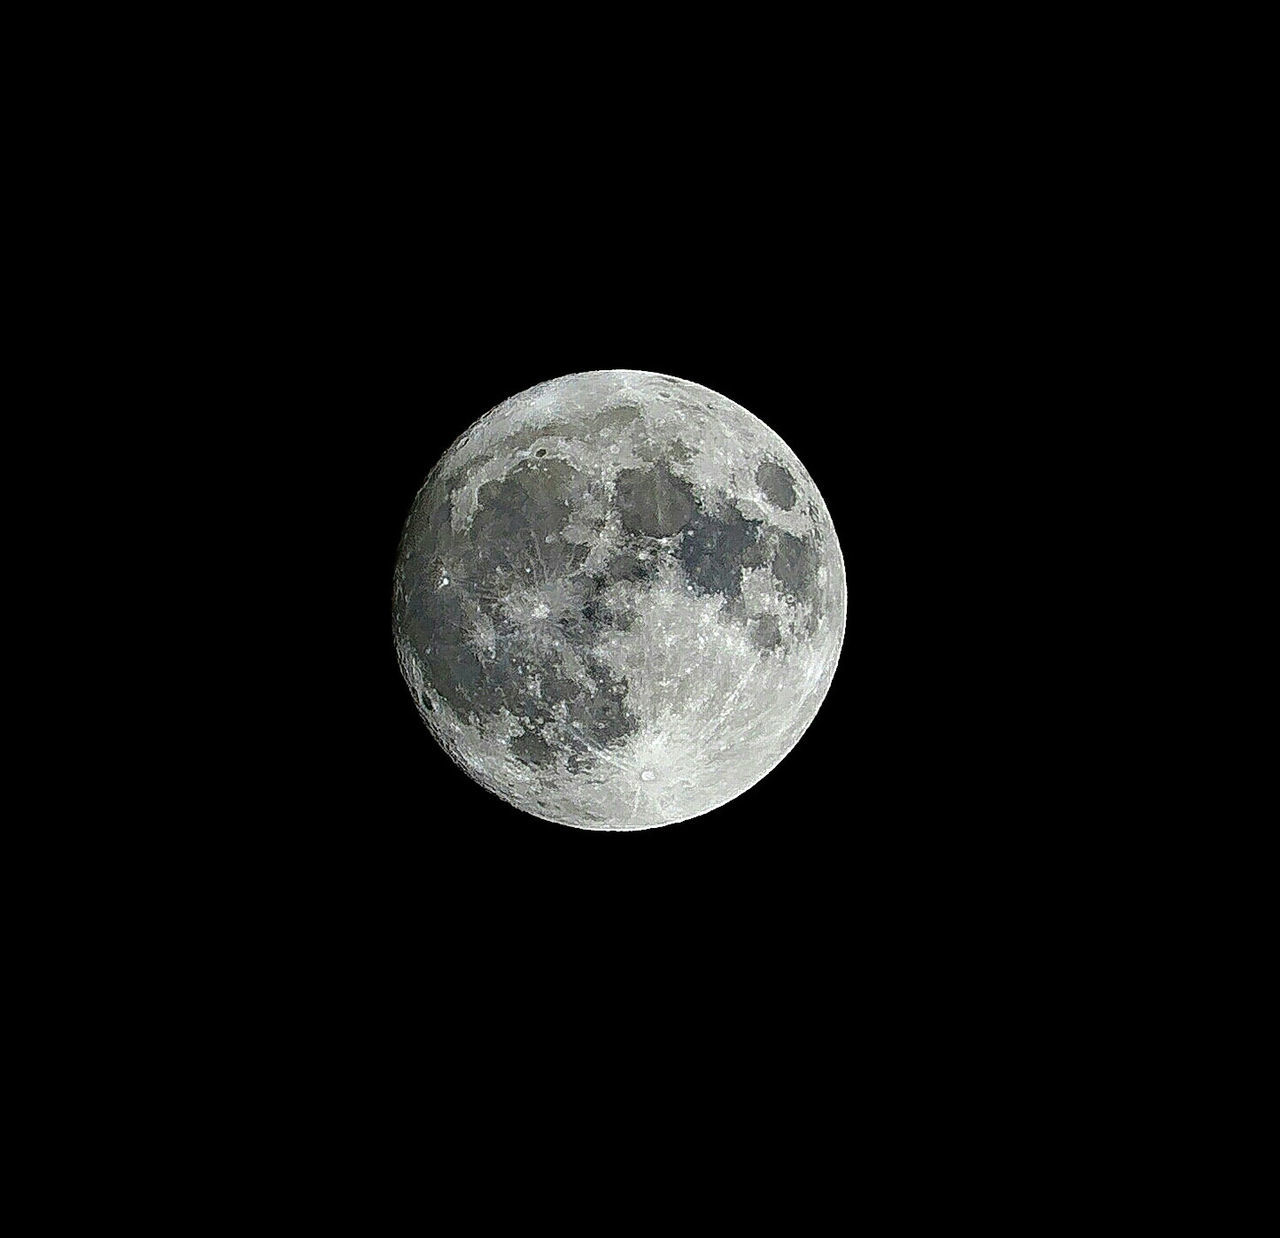 moon, night, full moon, astronomy, moon surface, planetary moon, no people, beauty in nature, nature, space exploration, scenics, outdoors, low angle view, space, close-up, black background, sky, satellite view